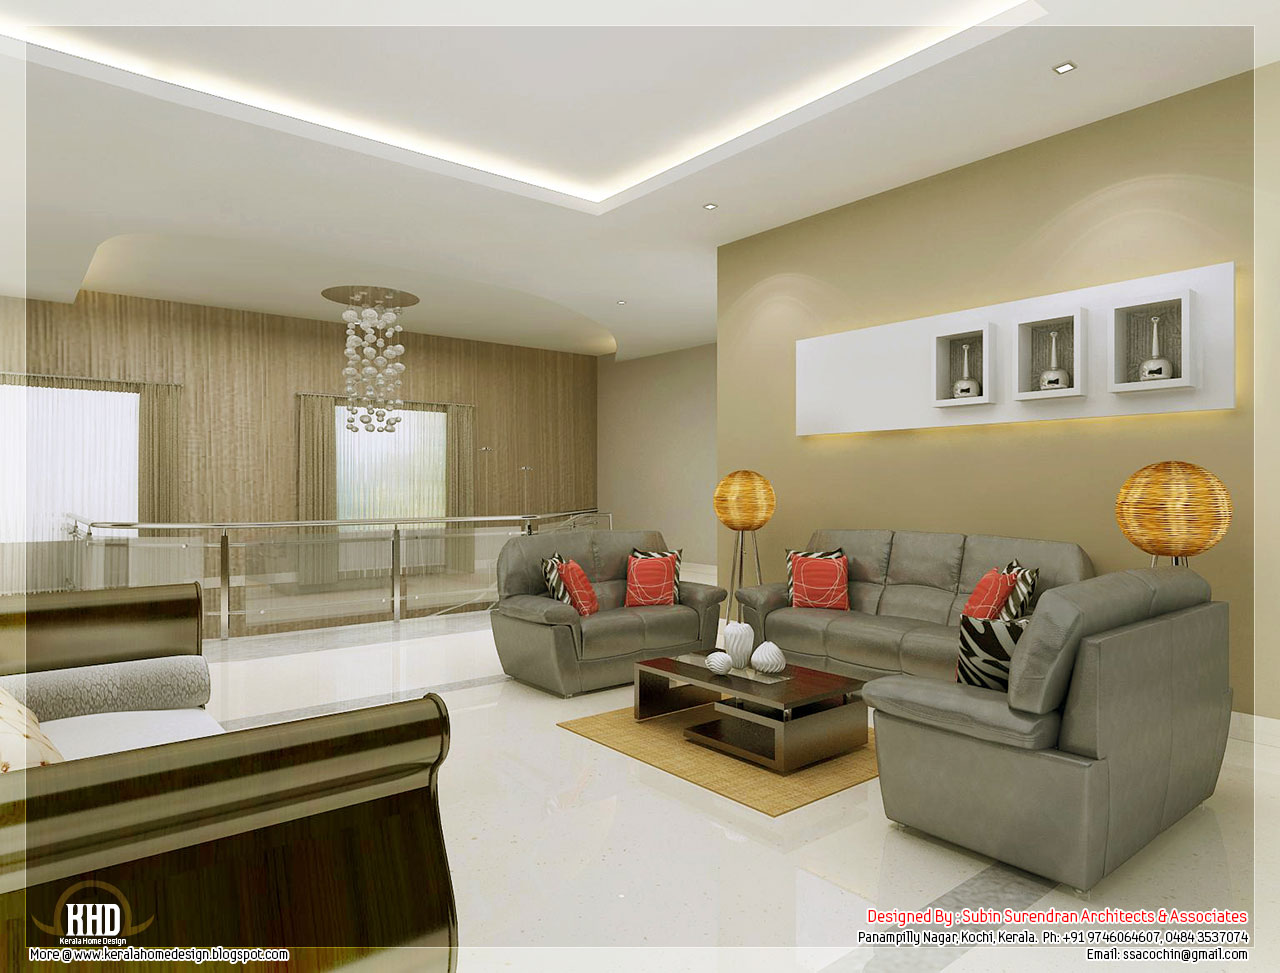 Awesome 3d interior renderings house design plans for Home plans with interior photos